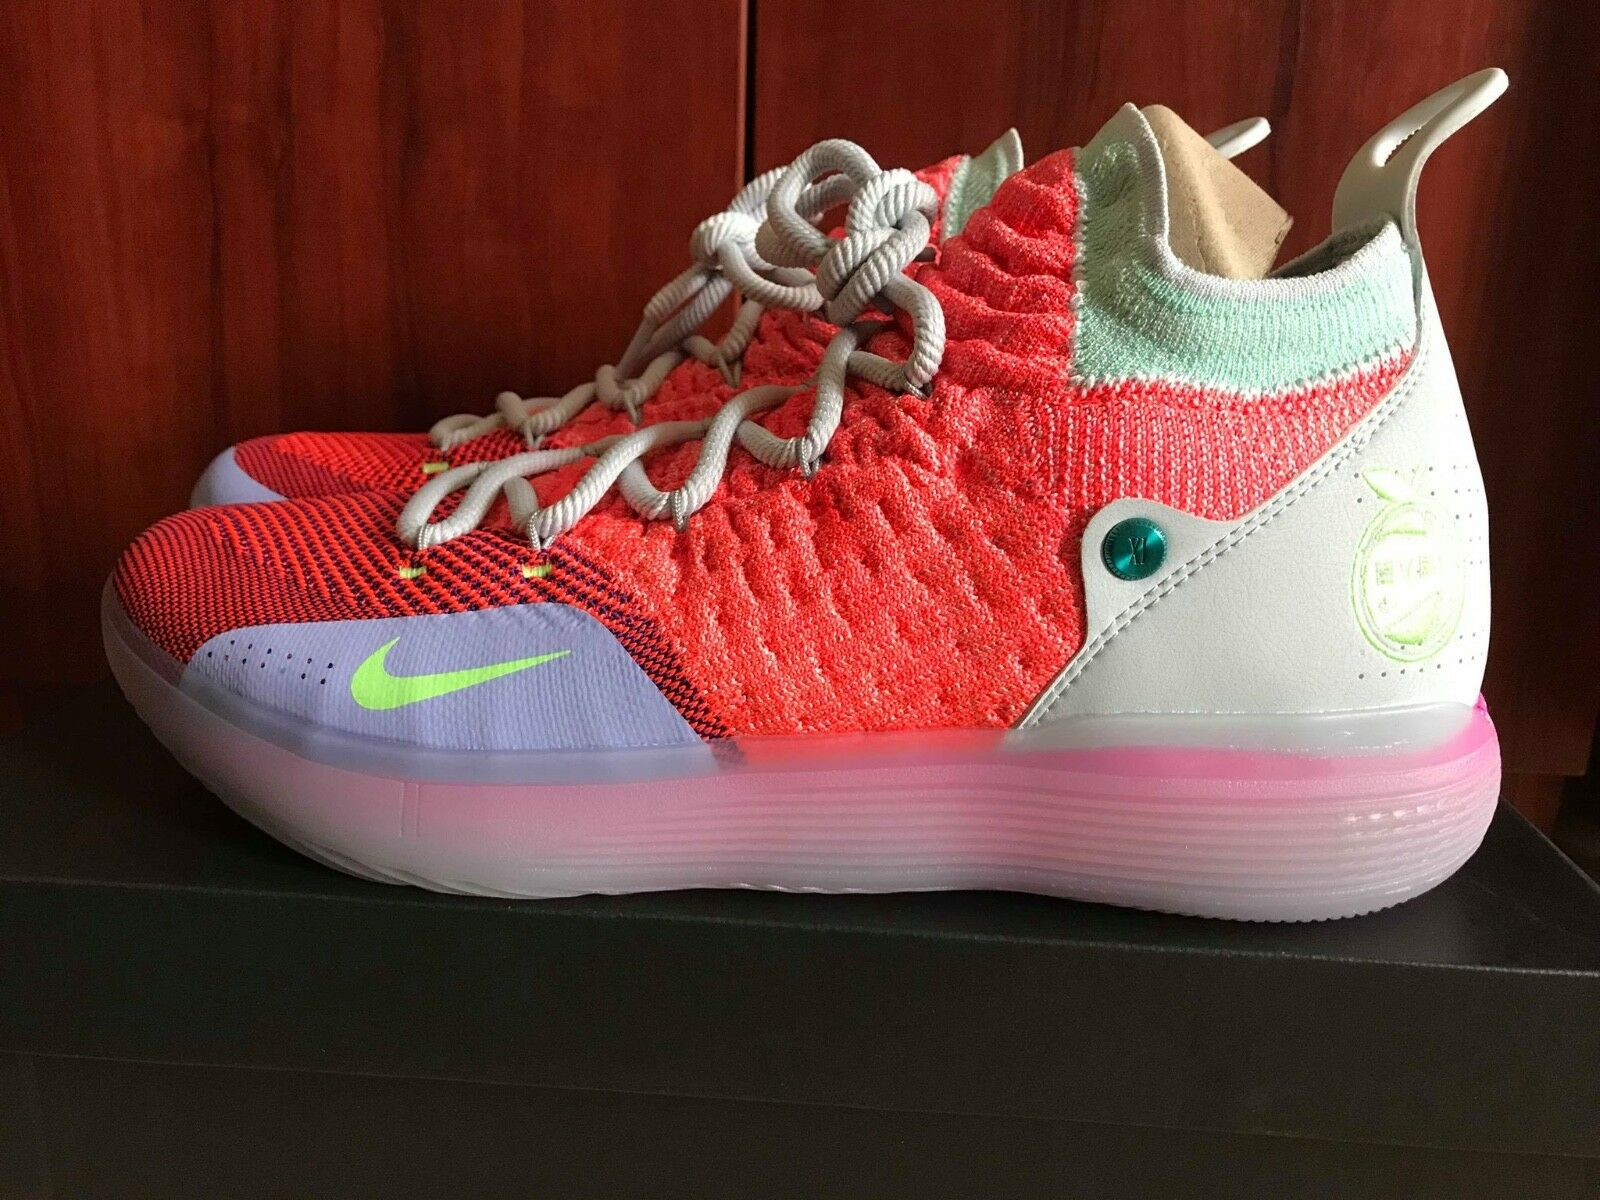 Nike Zoom KD 11 EYBL Peach Jam AO2604-600 Kevin Durant Mens Basketball Shoes NIB New shoes for men and women, limited time discount